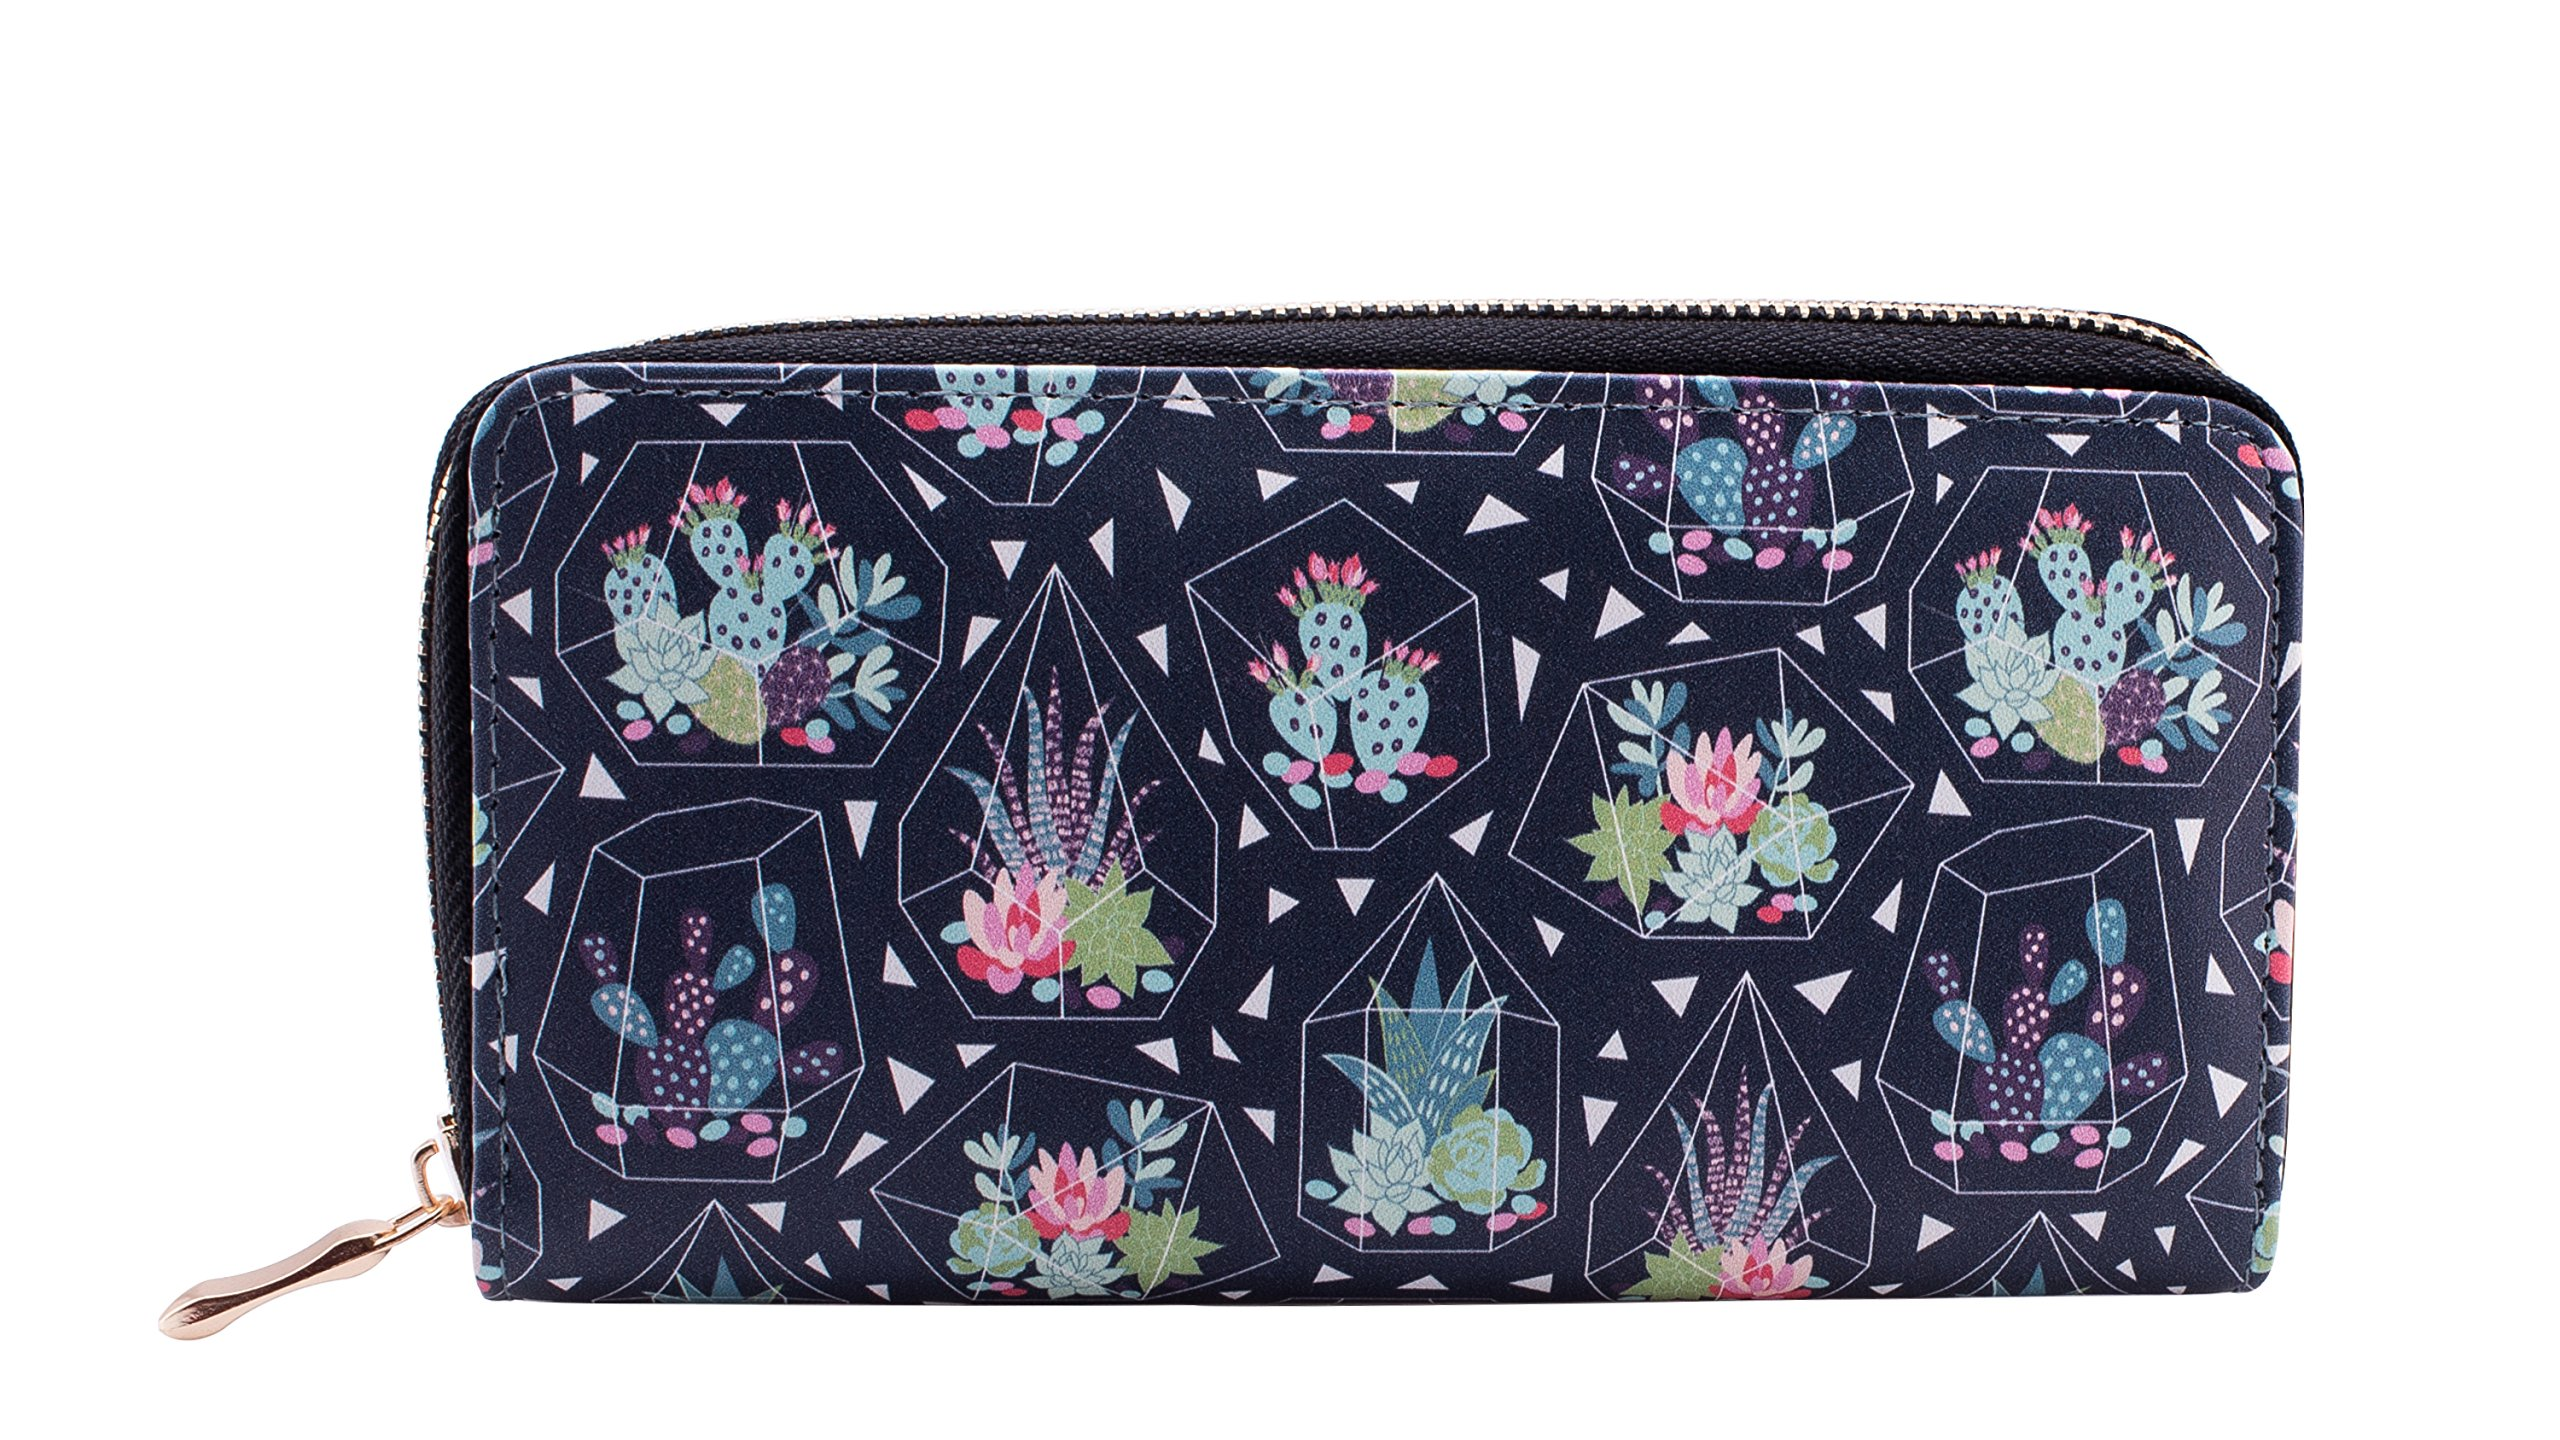 Cute Cactus Wallets for Women - Fashionable Small Womens Wallets